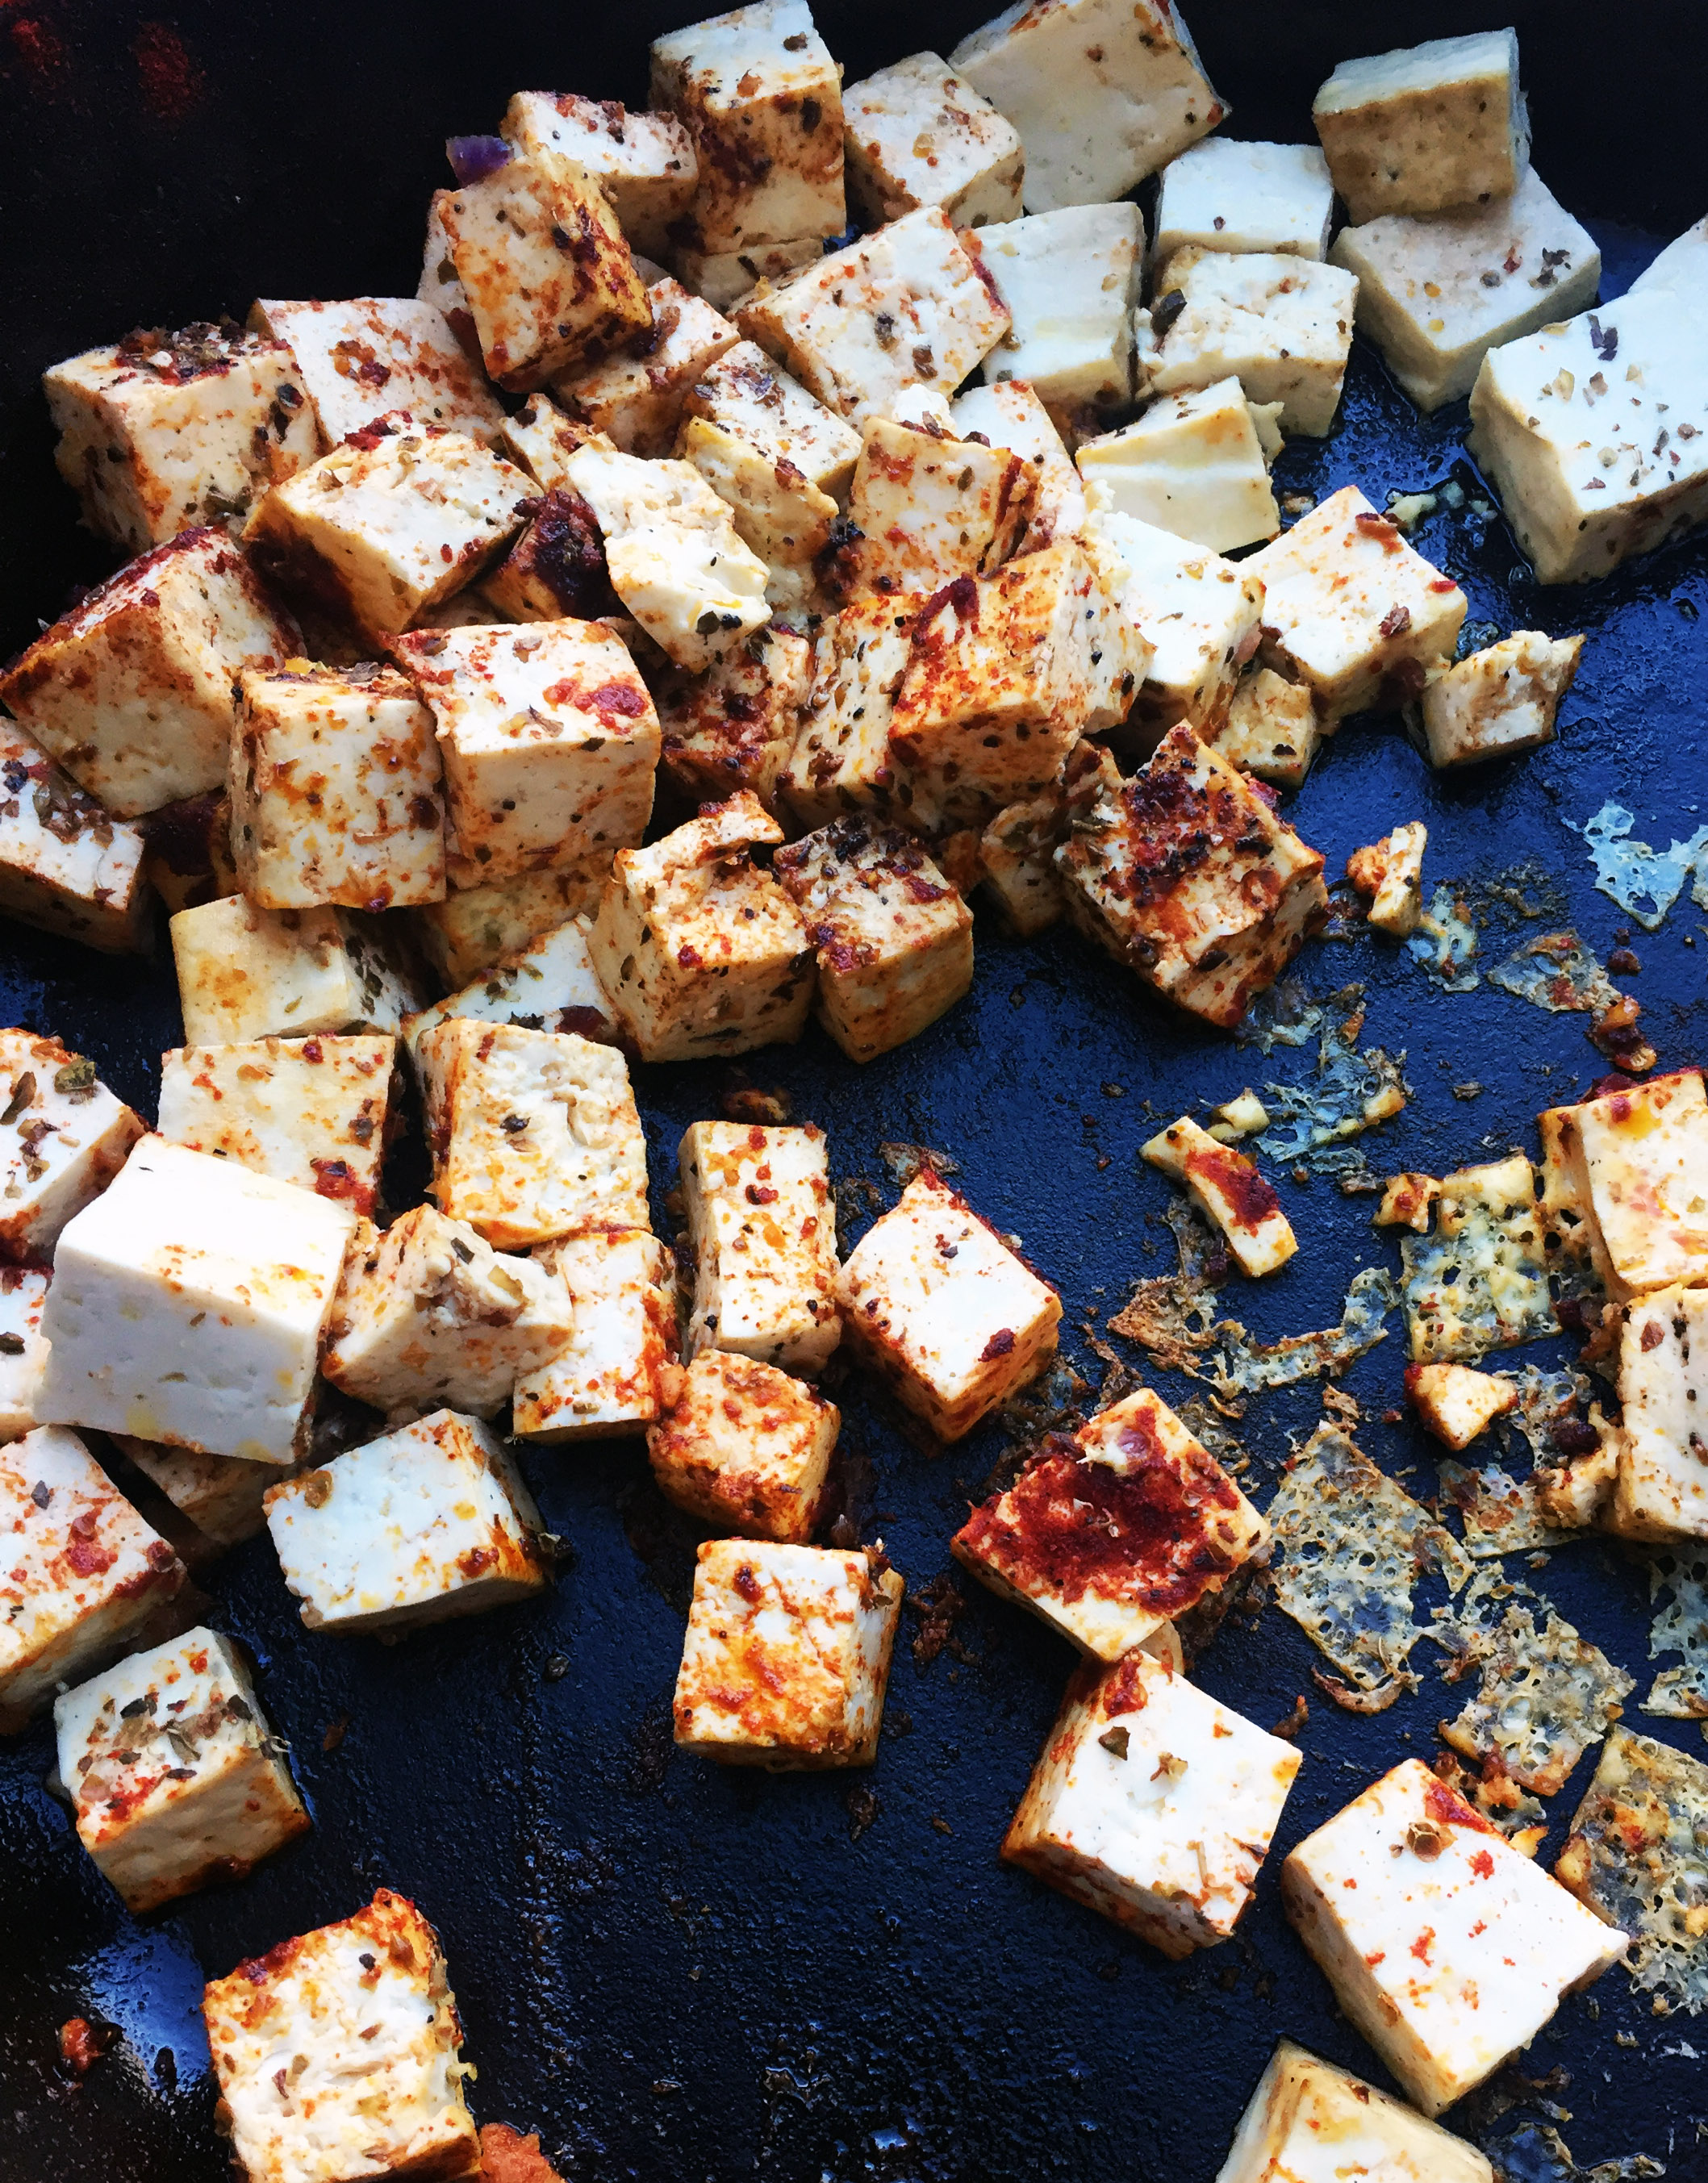 3. Place your tofu pans into your second frying pan while potatoes cook over medium low heat with oil. Cook for a couple minutes, add spices, mix well, and flip every couple mintues until a nice sear forms. Usually 8-10 minutes.